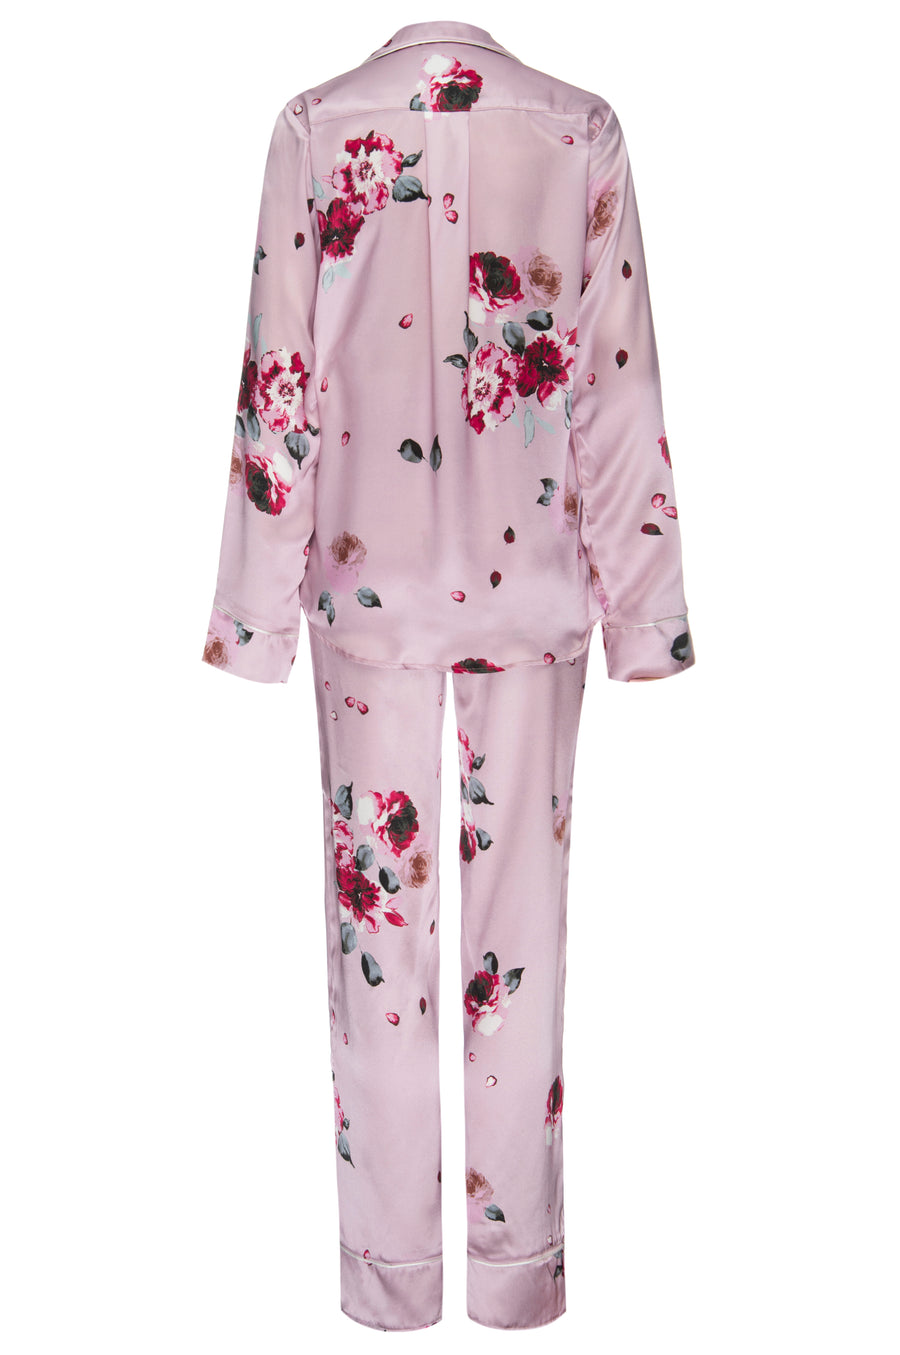 Silk Charmeuse Long Sleeved PJ Top + Pant Set: Blush and Crimson Rose Print